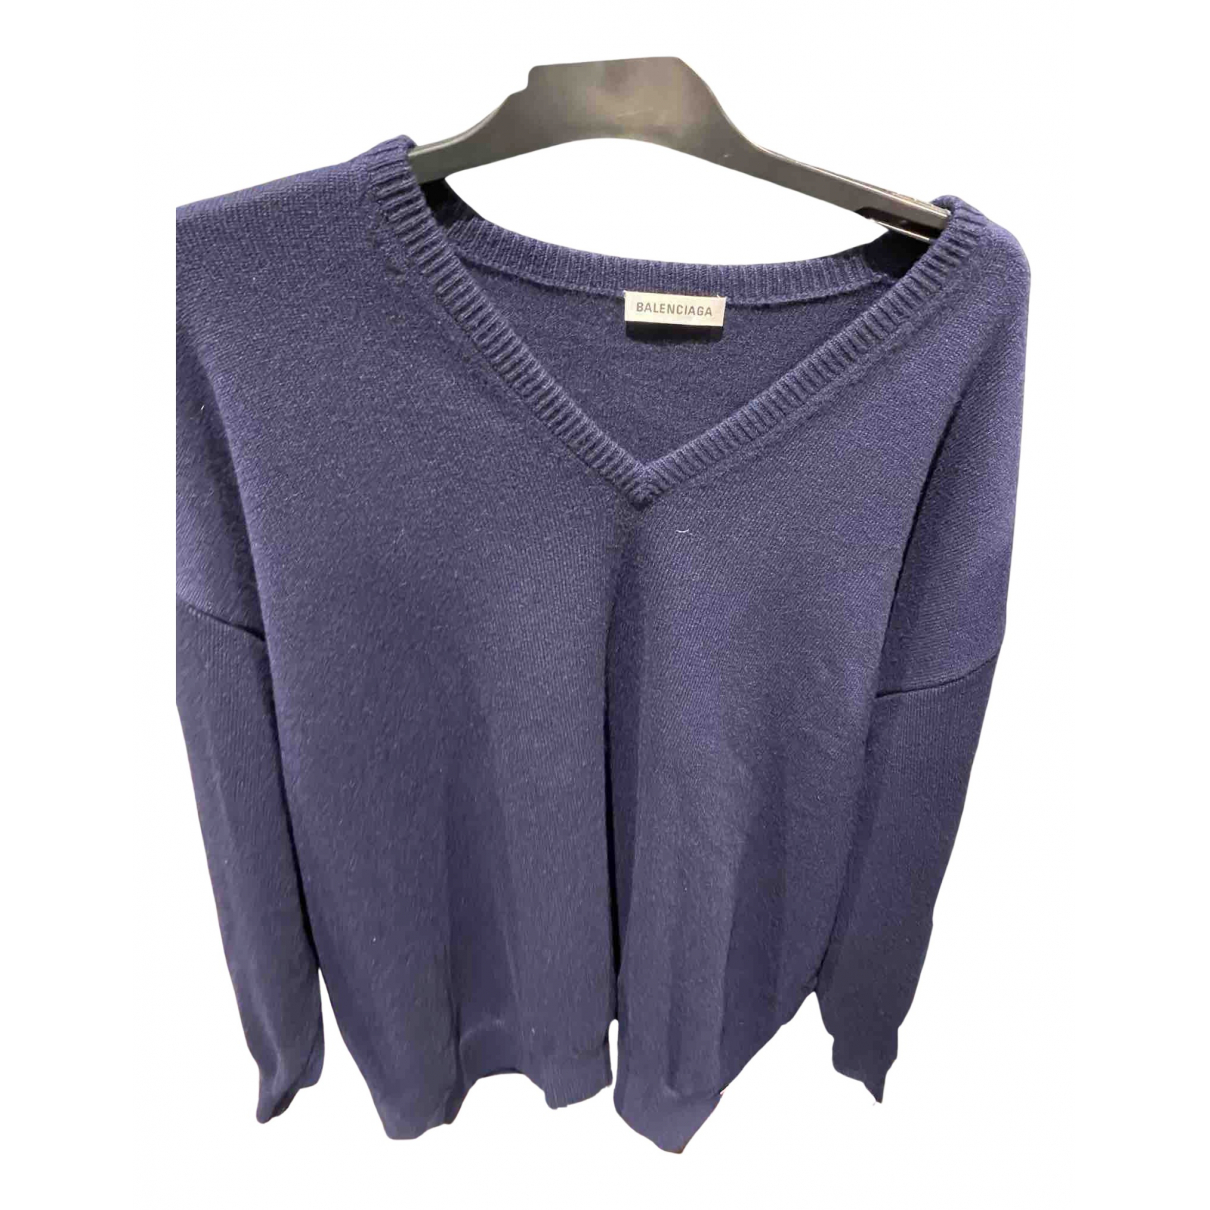 Balenciaga N Navy Cashmere Knitwear for Women M International